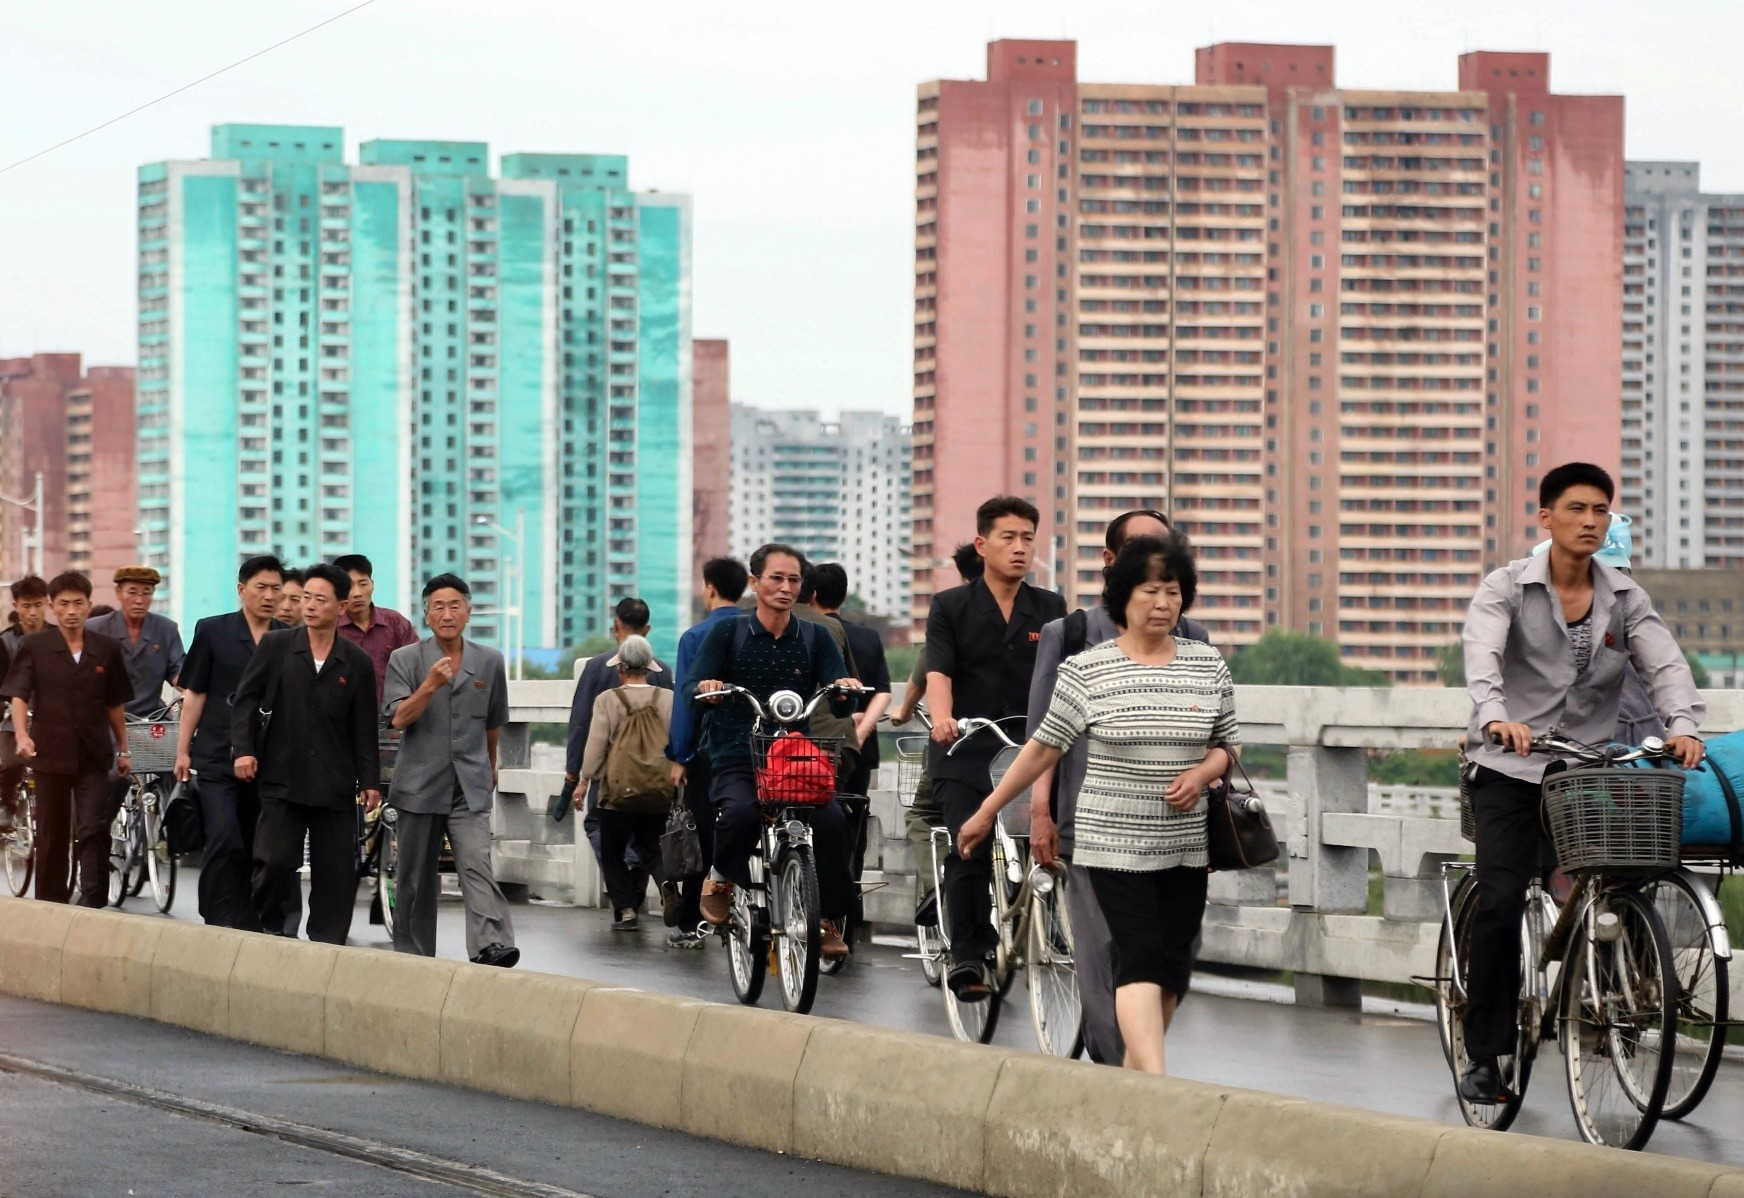 Men and women walk on a bridge as apartment buildings are seen in the background during the morning rush hour in Pyongyang. High rise apartments are a common form of accommodation for people living in the capital city.